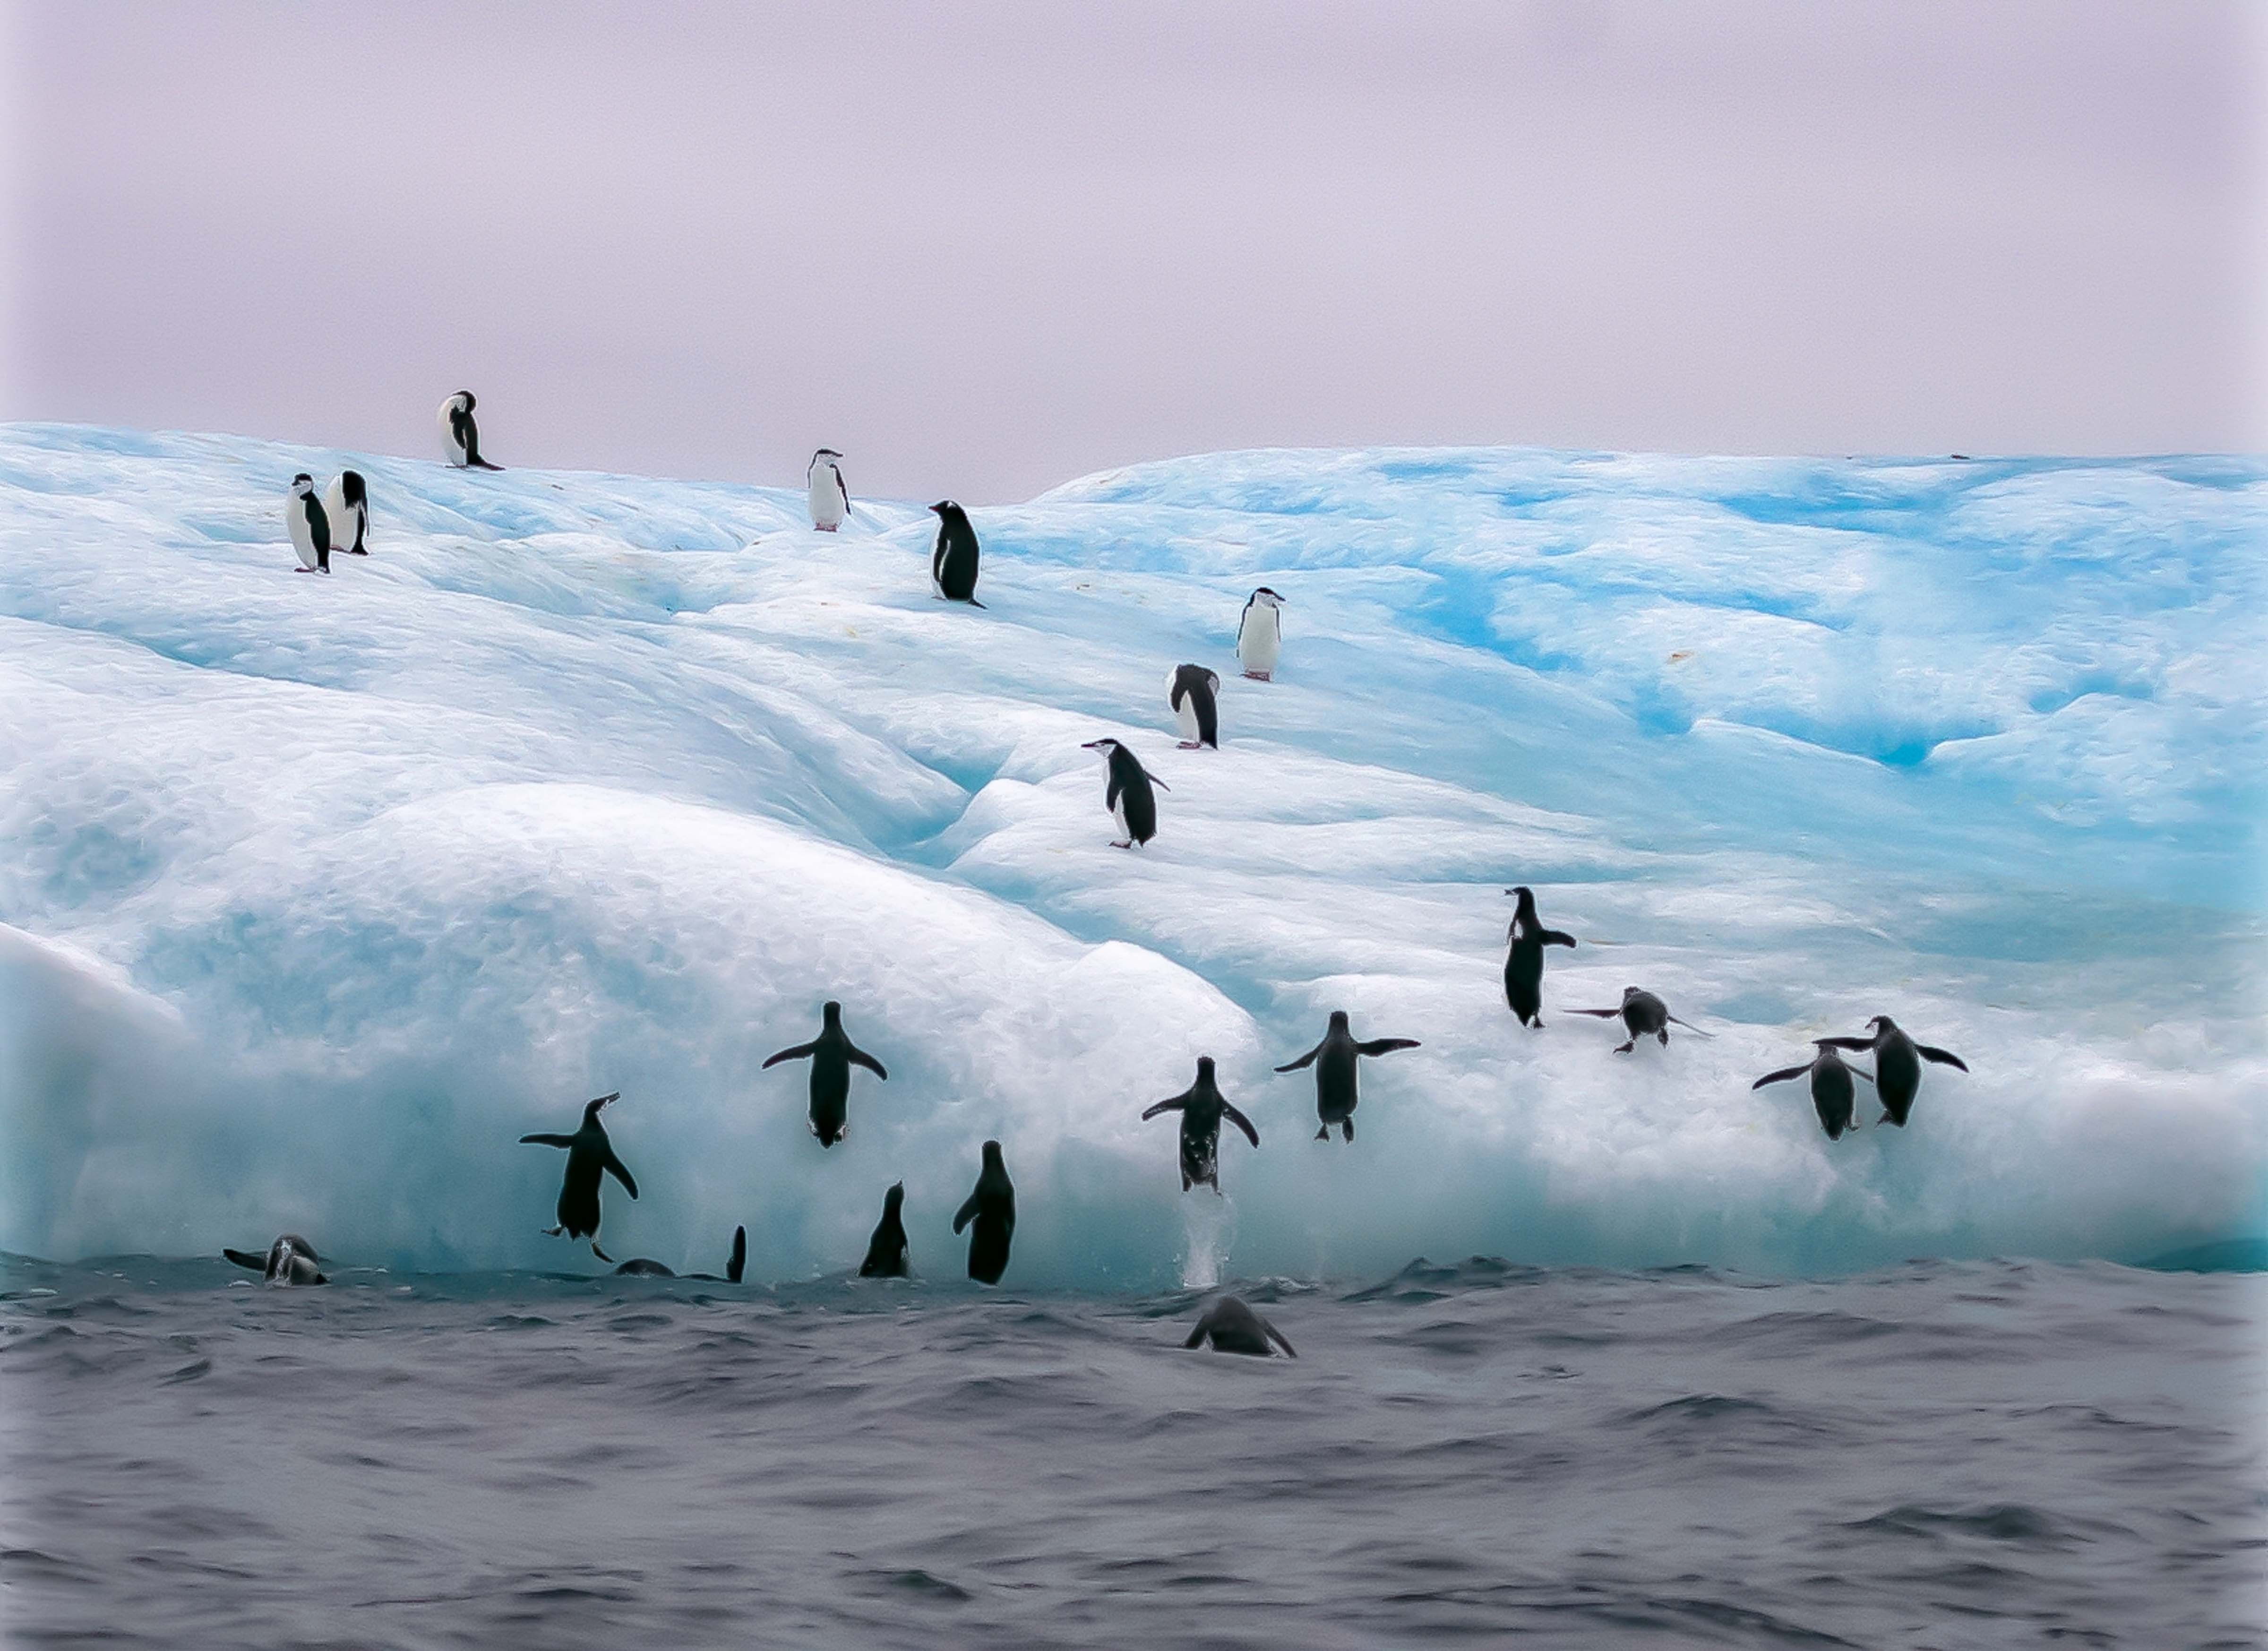 South Sandwich Is, Penguins Jumping Up On Iceberg, 2006